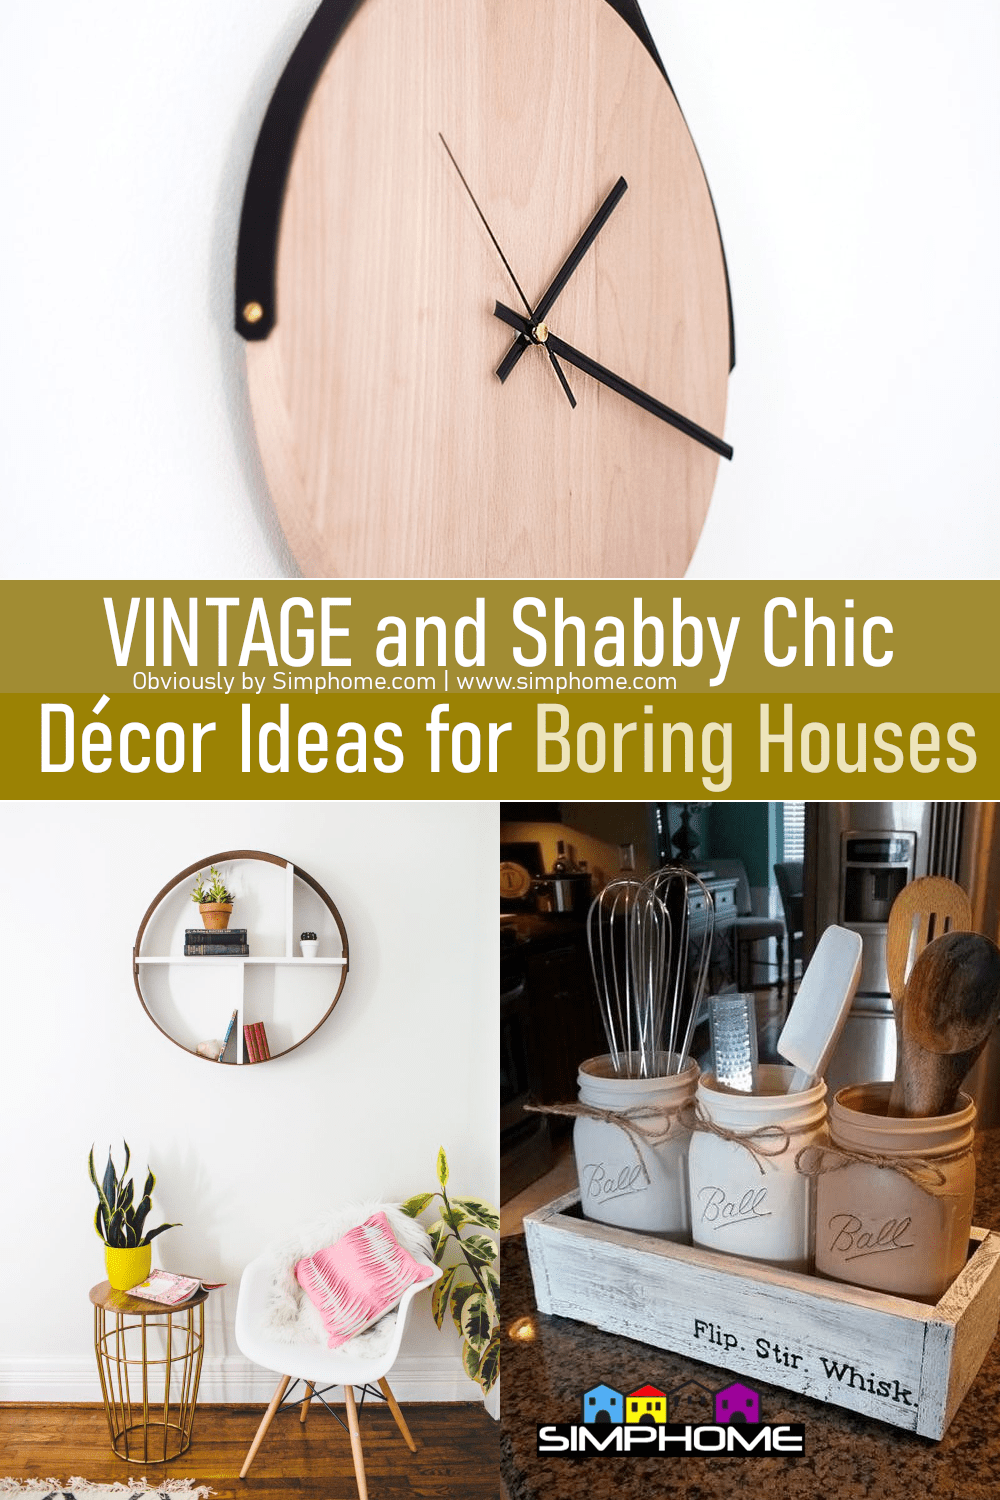 60 Vintage and Shabby Chic Decor Ideas by Simphome.com